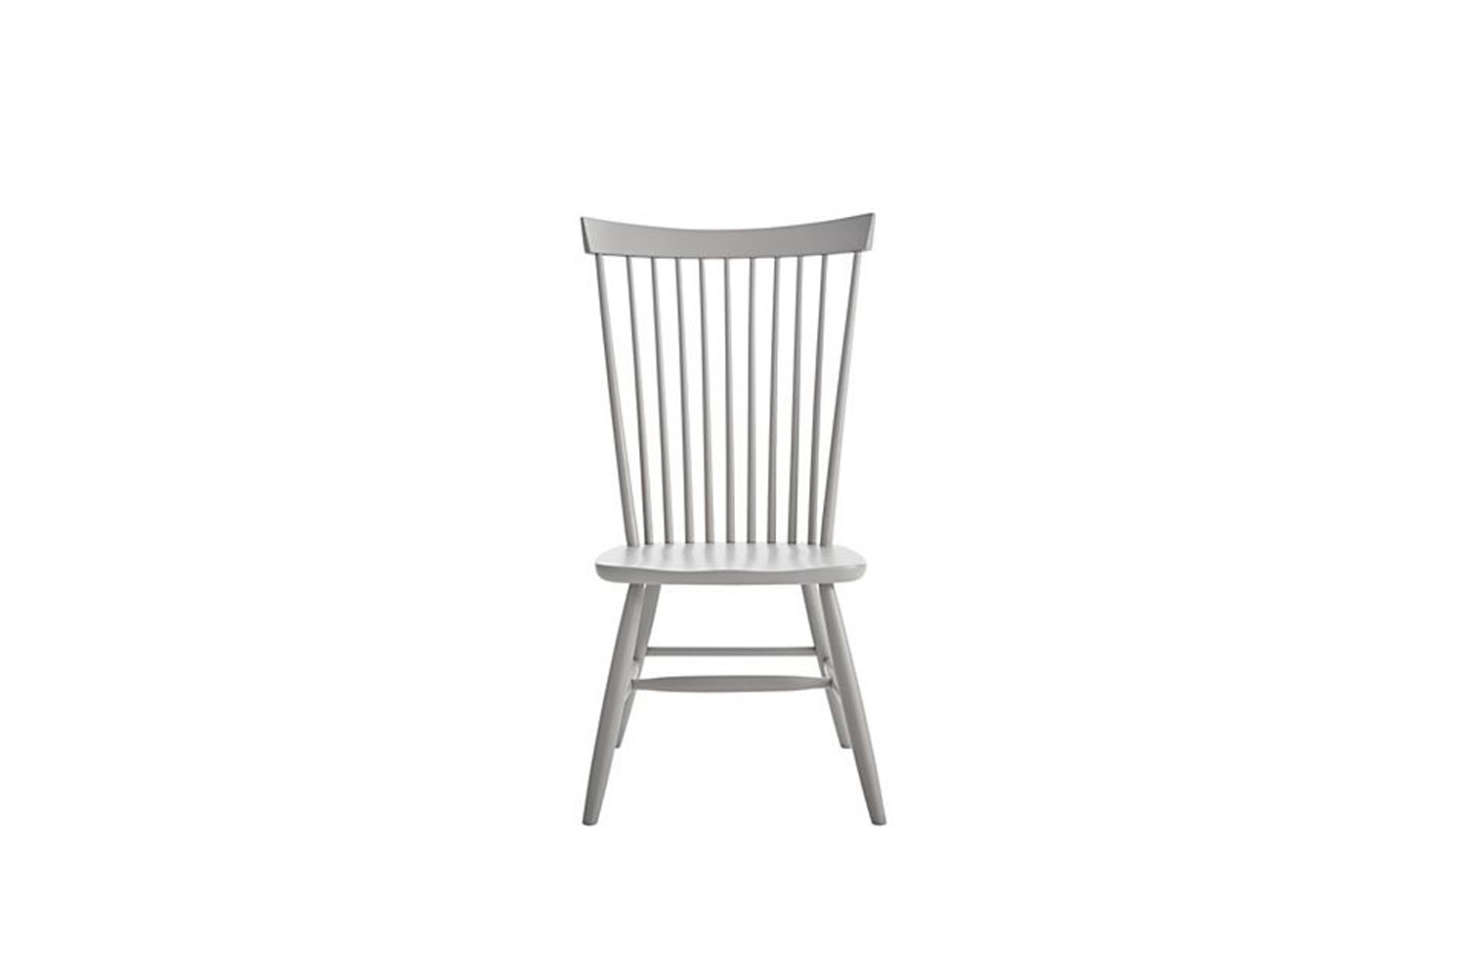 10 Easy Pieces The Windsor Chair Revisited